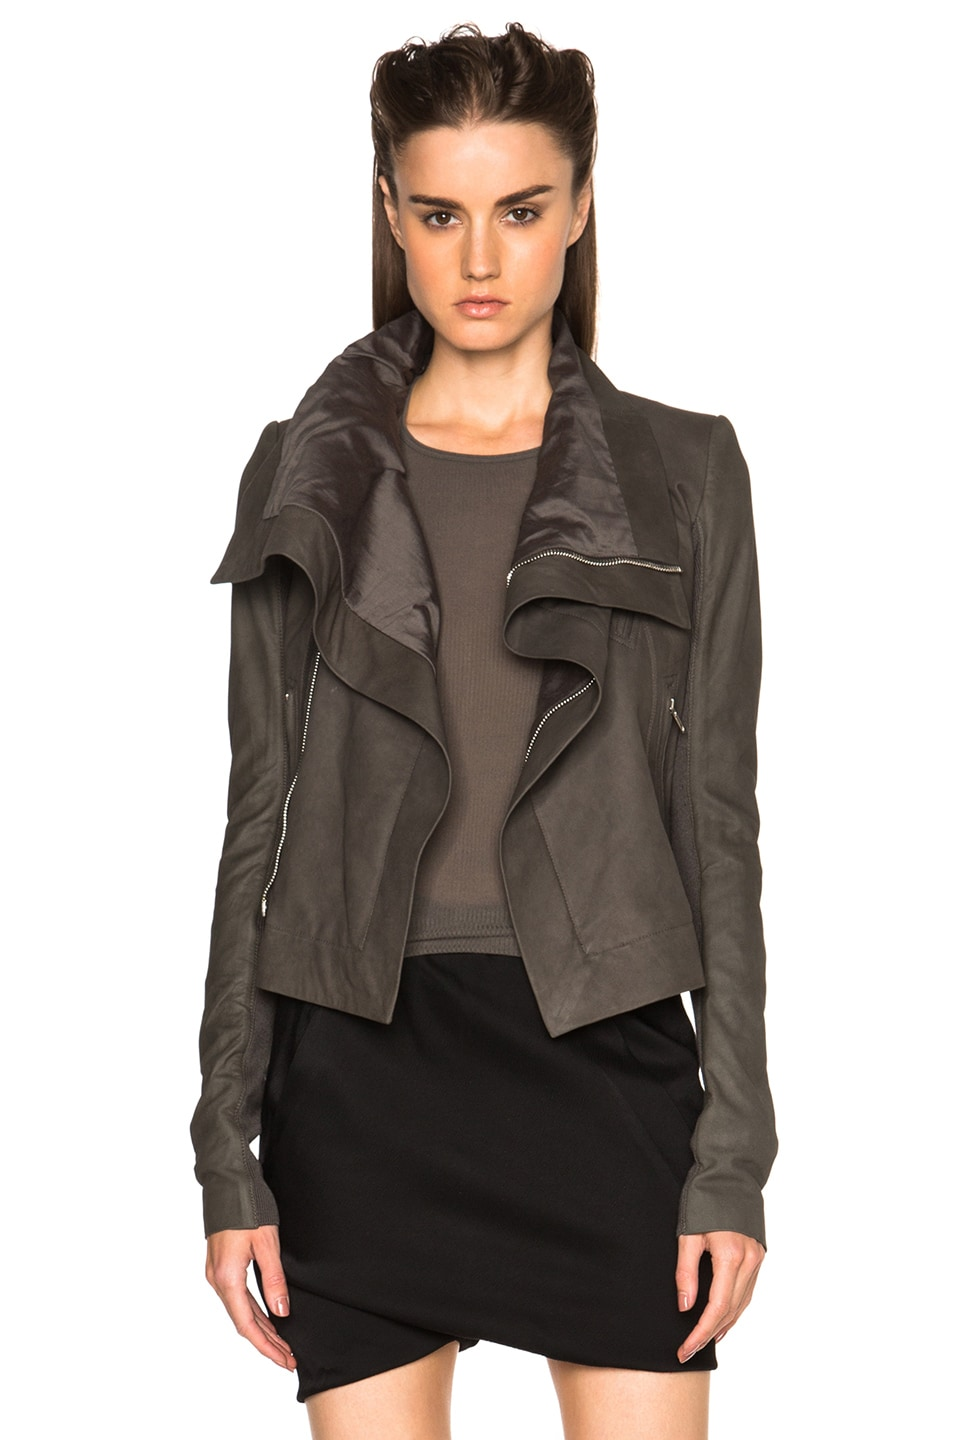 Image 1 of Rick Owens Nuvola Leather Classic Biker Jacket in Dark Dust